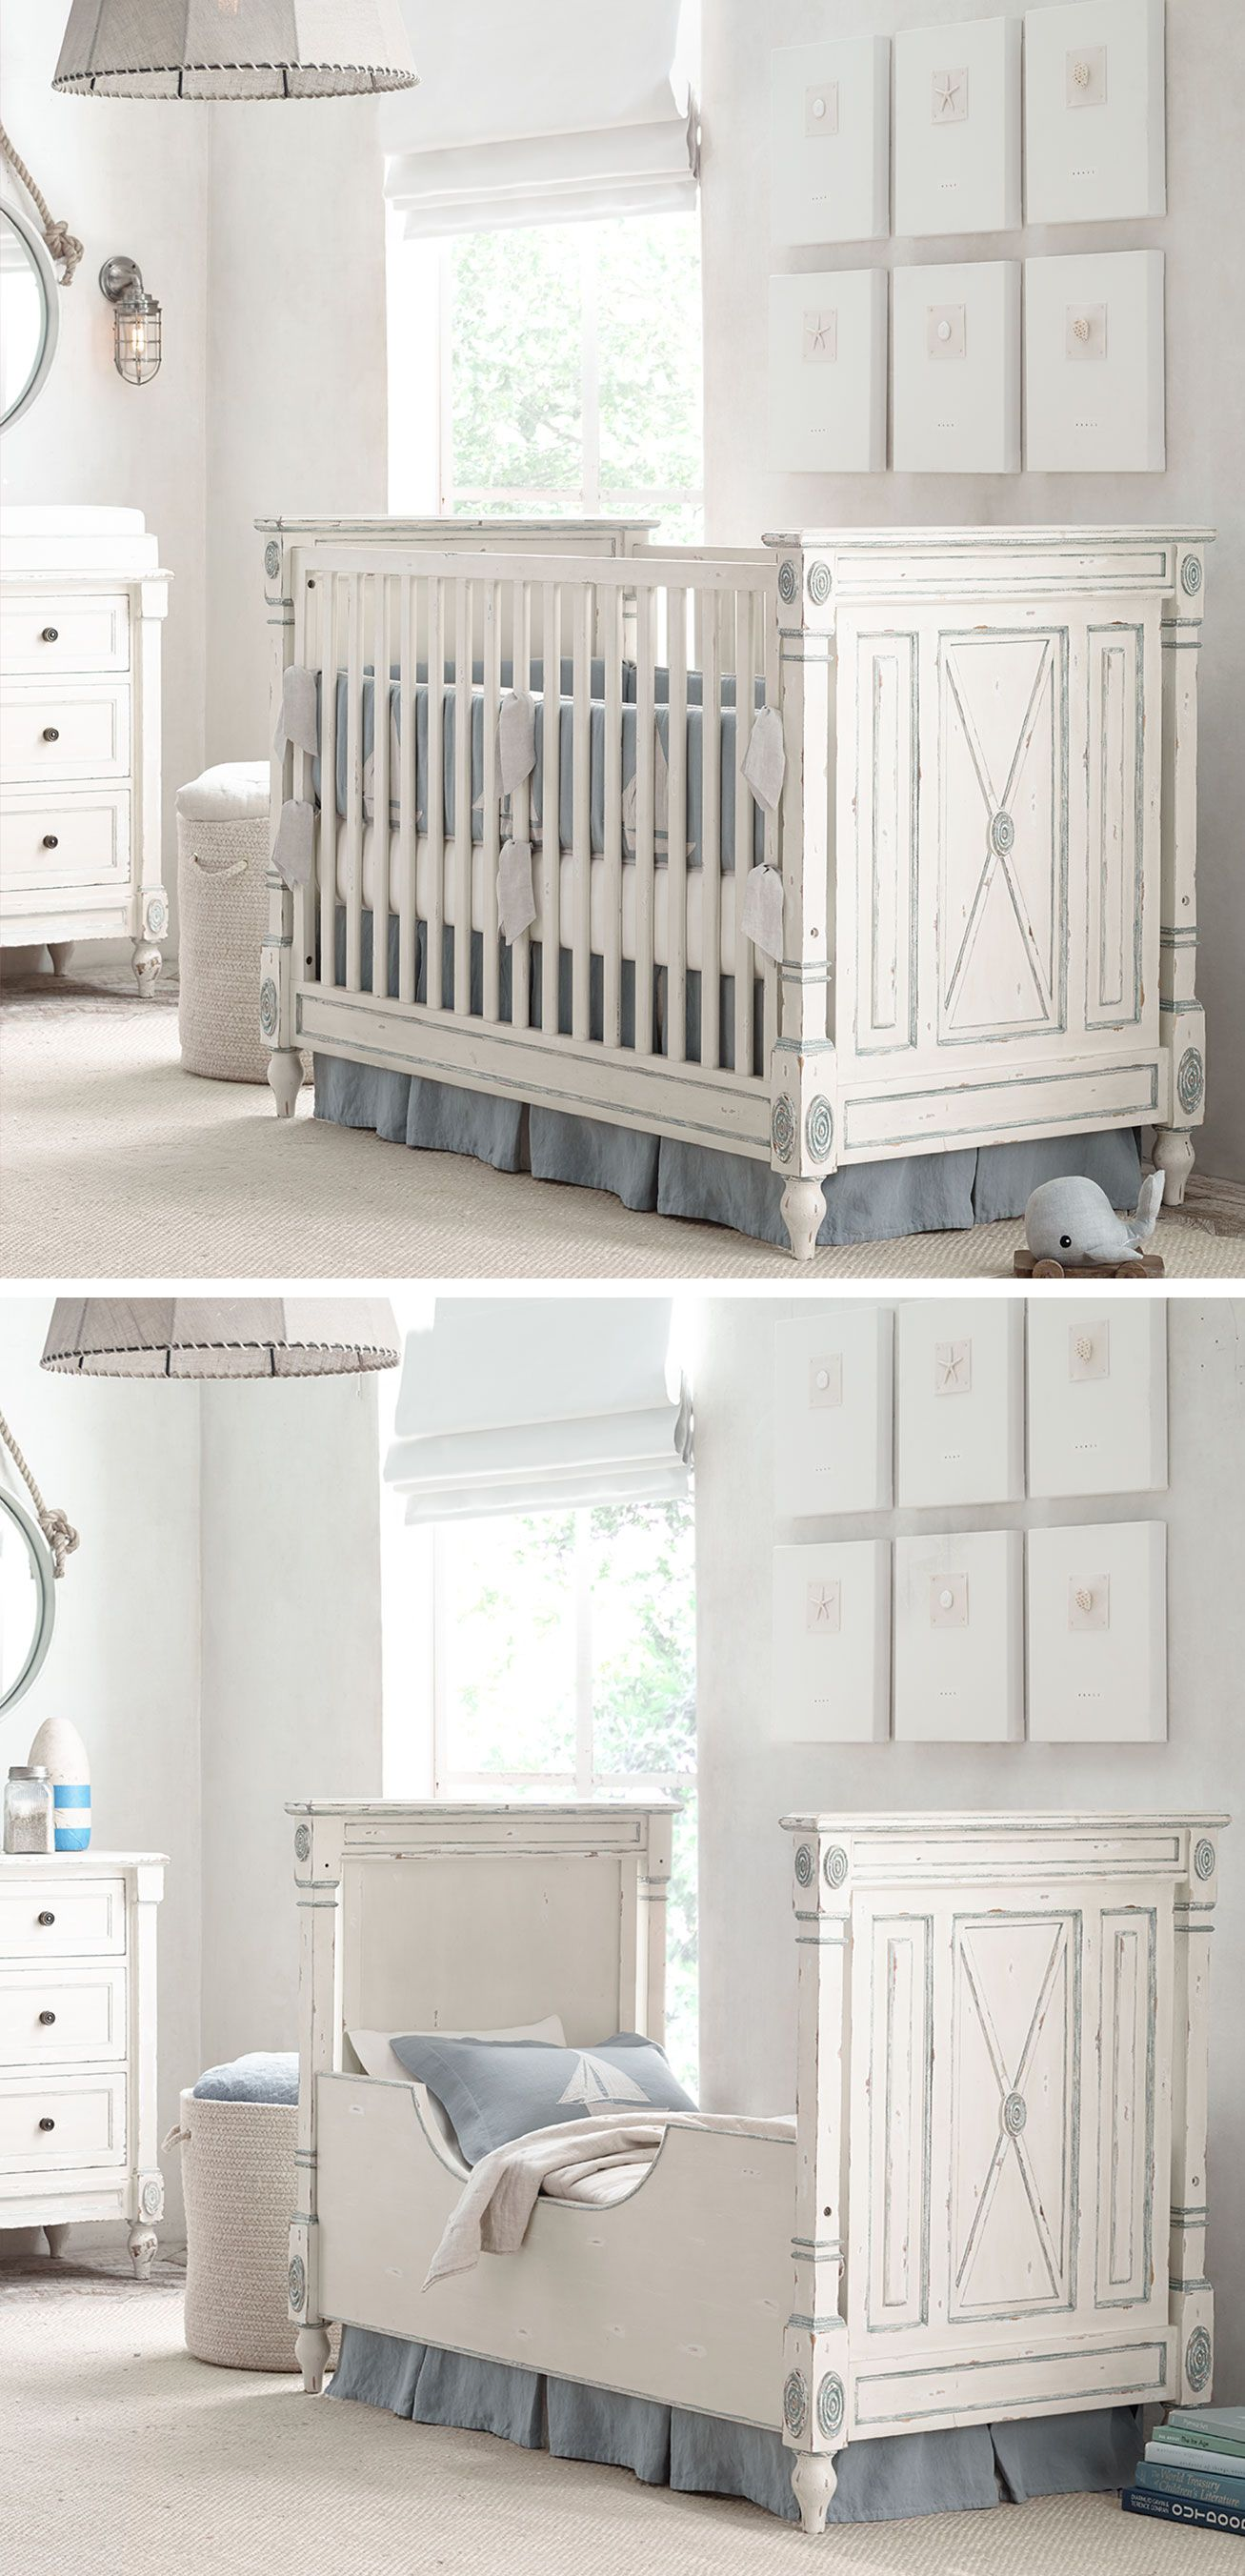 Room To Grow Create A Nursery That Is Soothing For Baby And Adopts